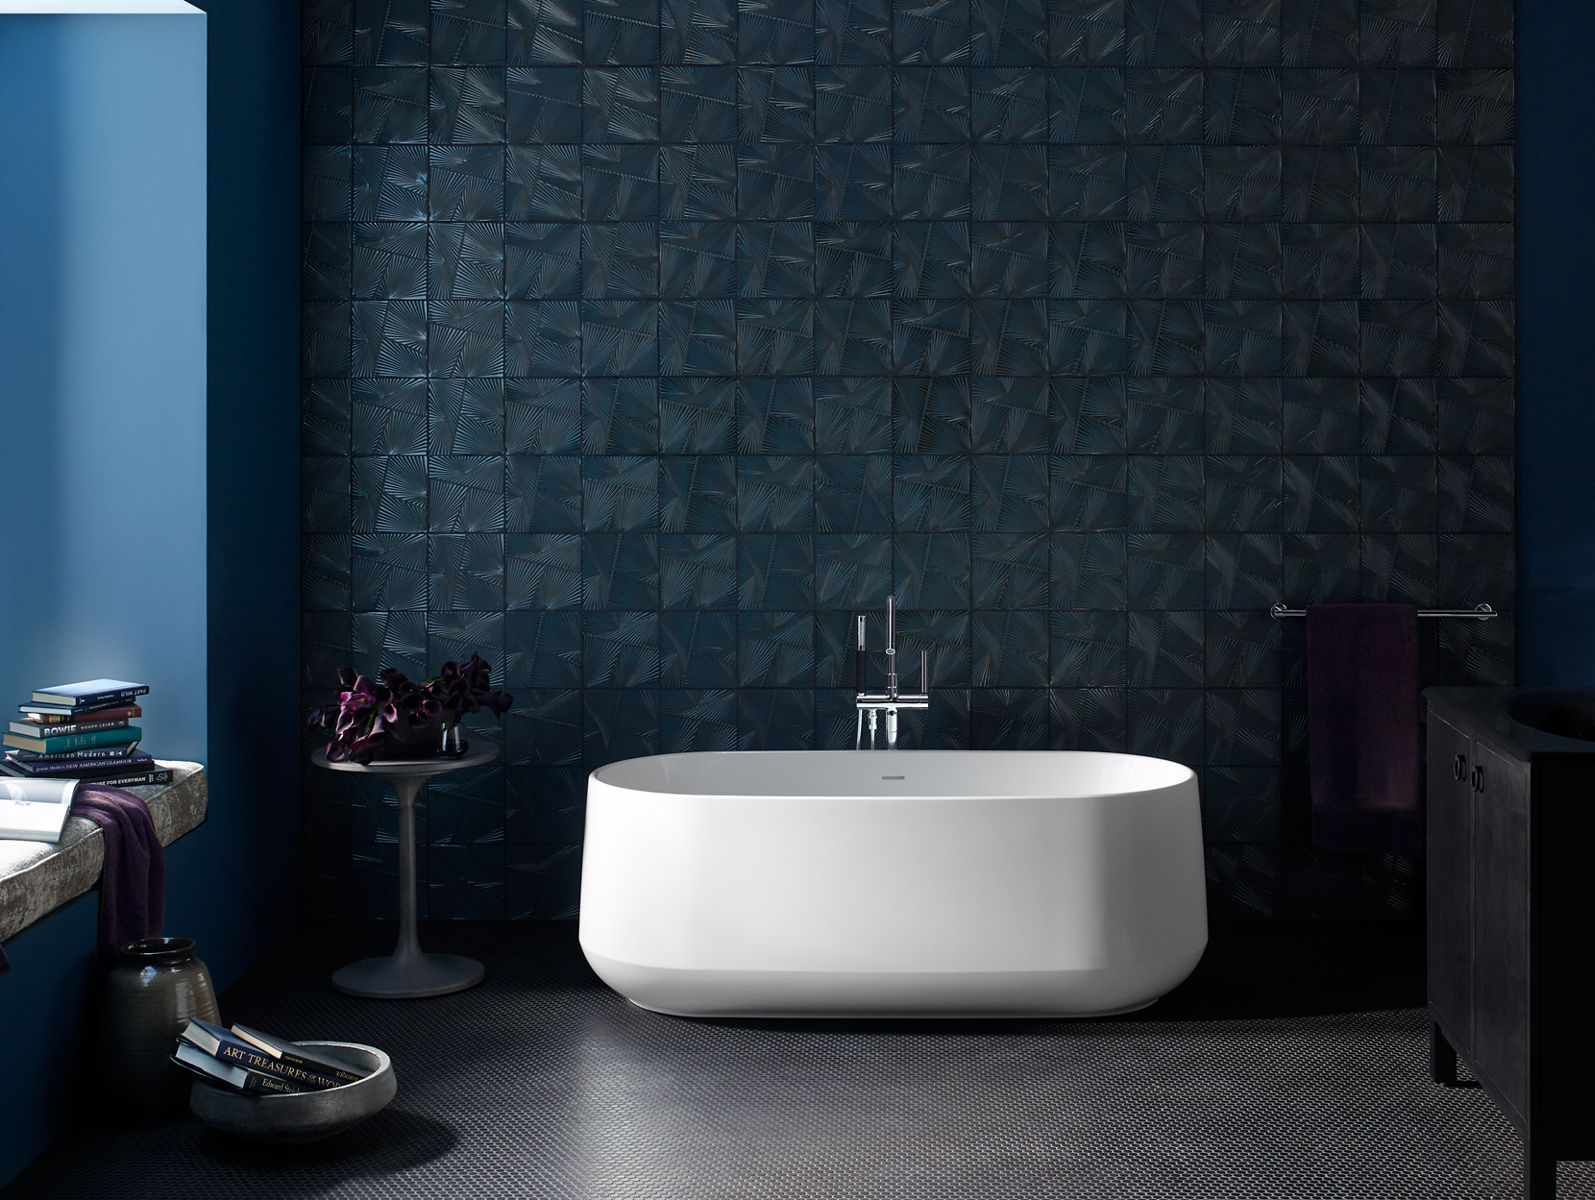 Bathroom Tubs And Sinks Home Decorations Design list of things